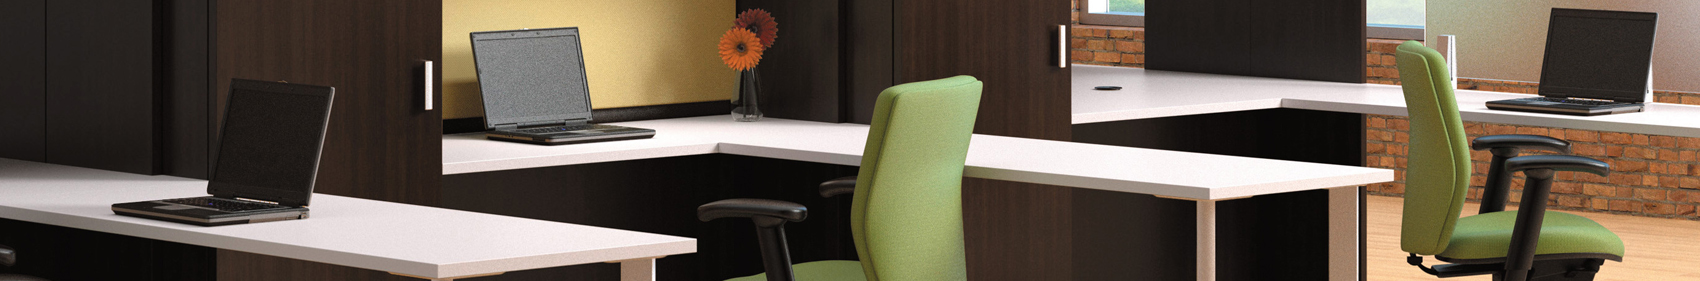 Brownsworth Office Design and Installation Service Markets